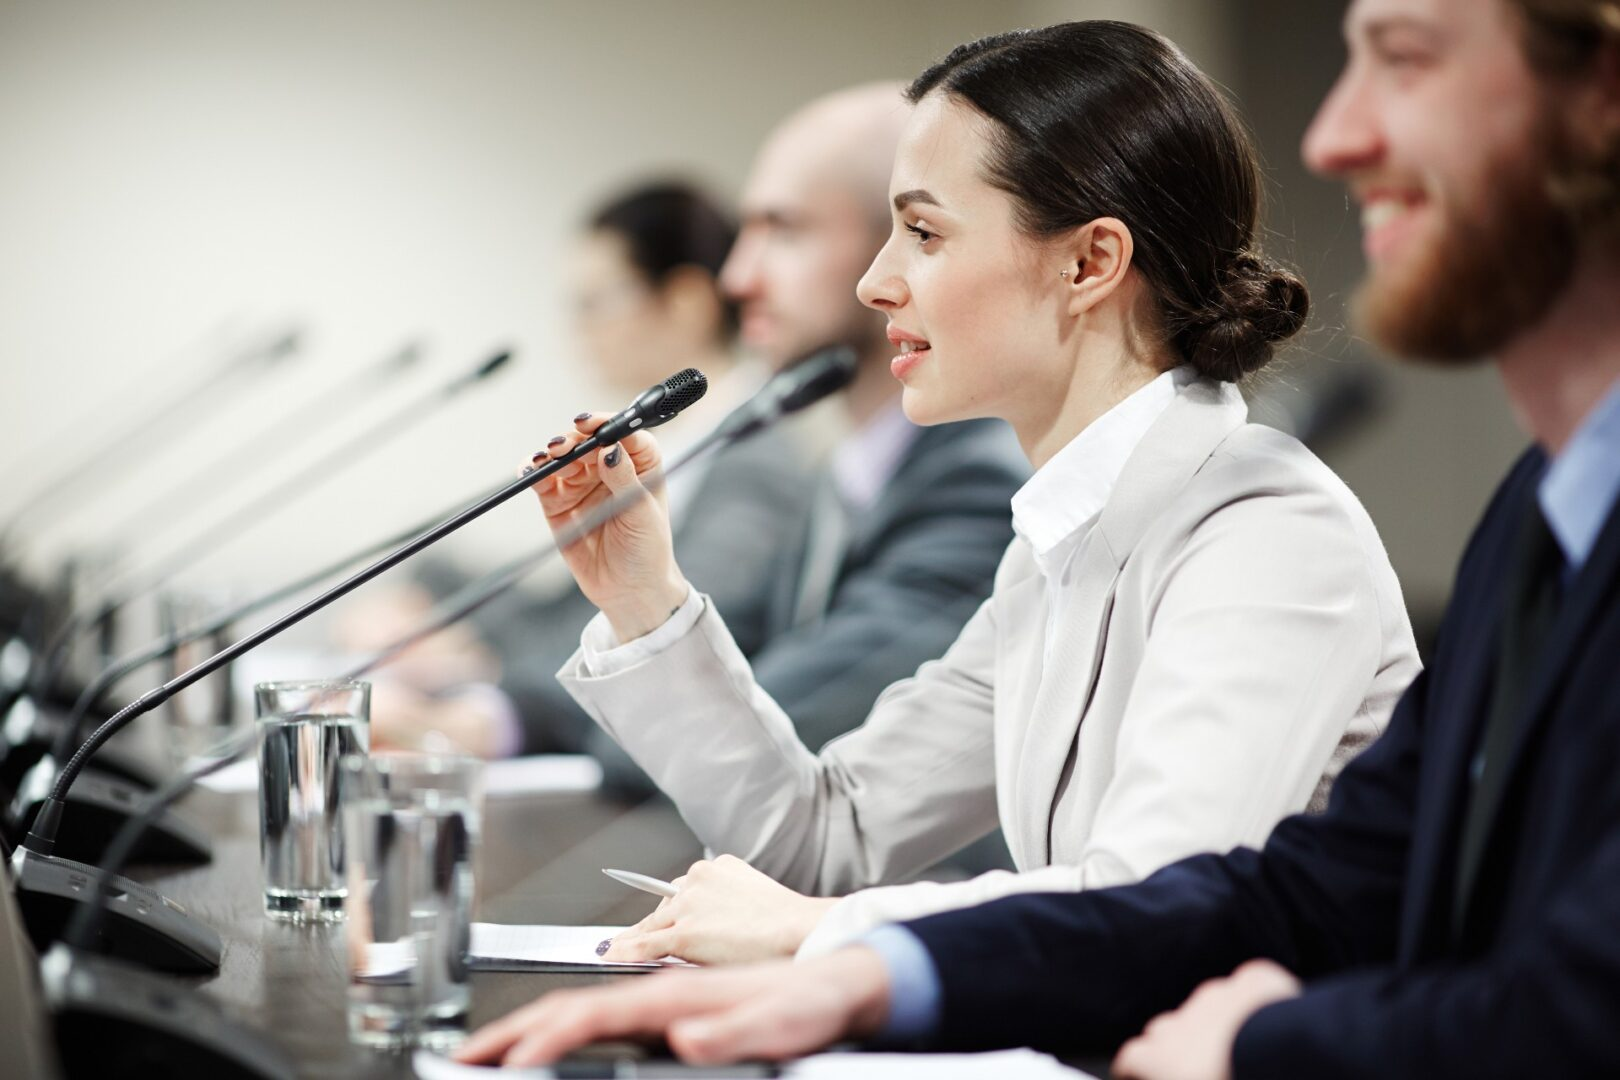 woman speaking into microphone at panel discussion